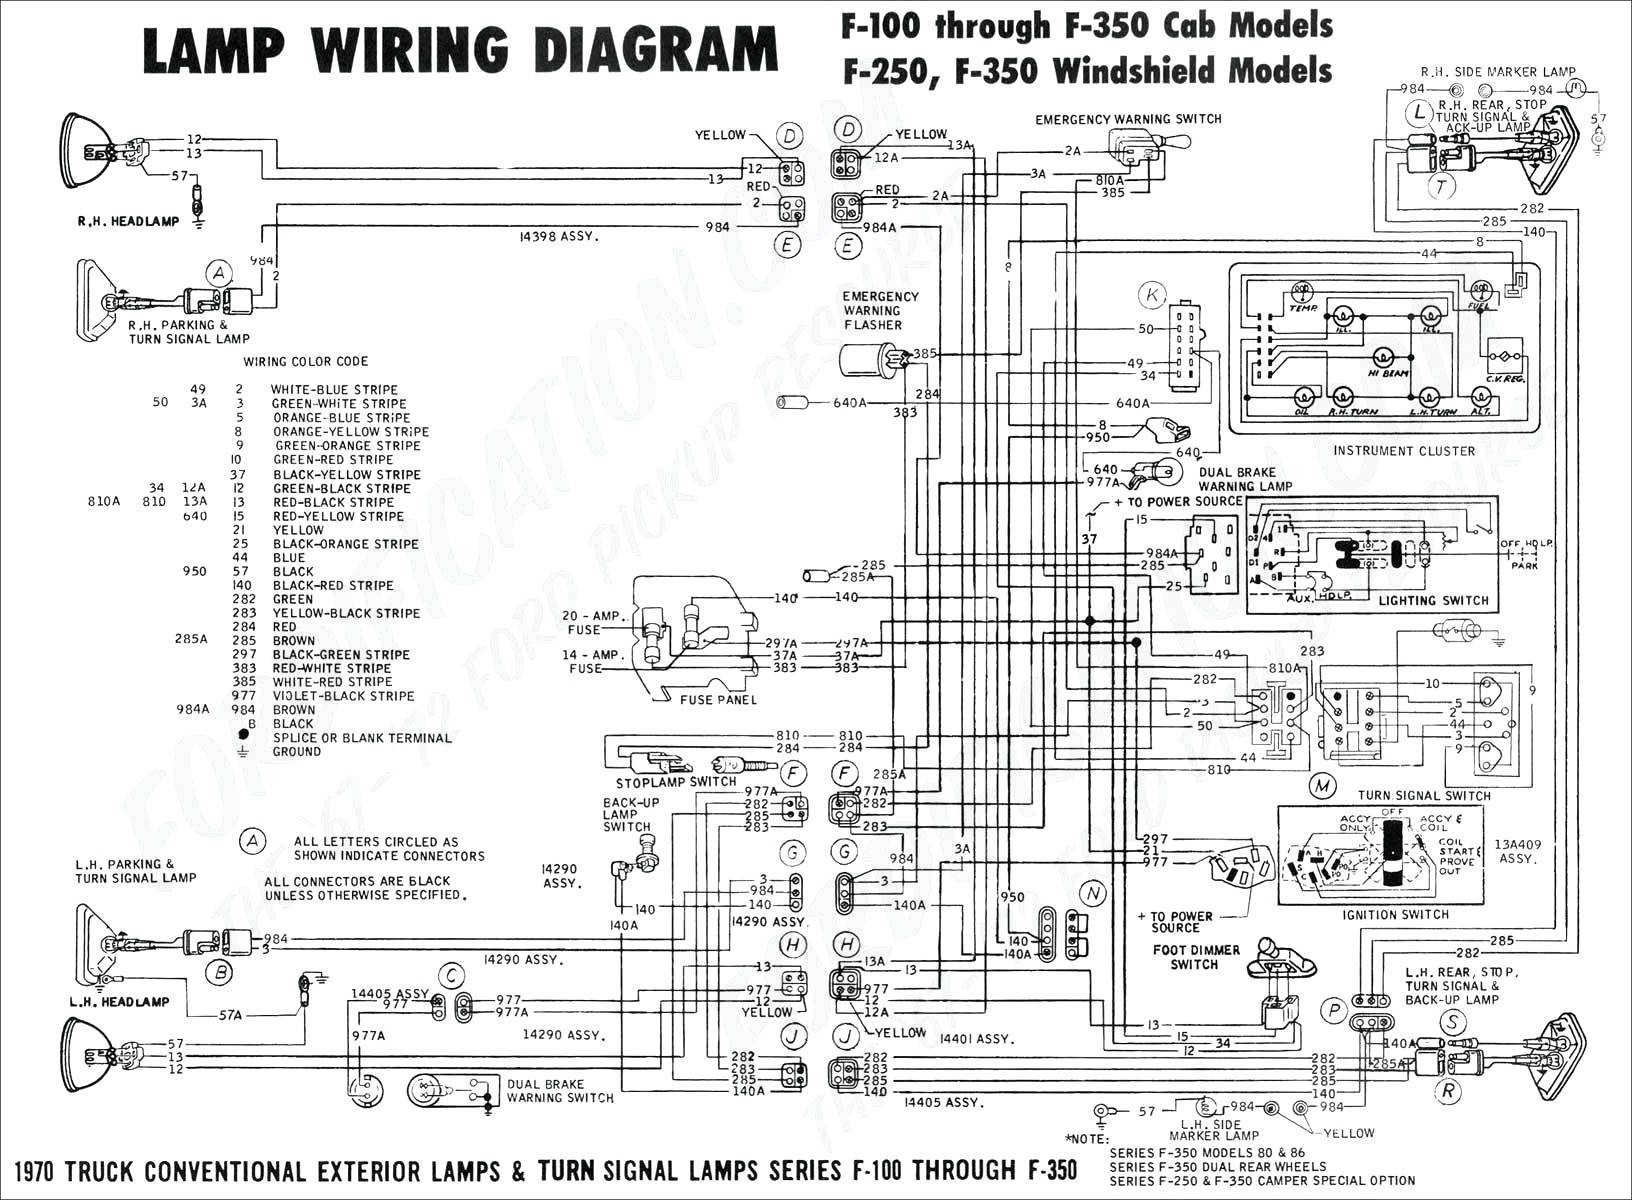 Ford Windshield Wiper Motor Wiring Diagram 66 77 Early